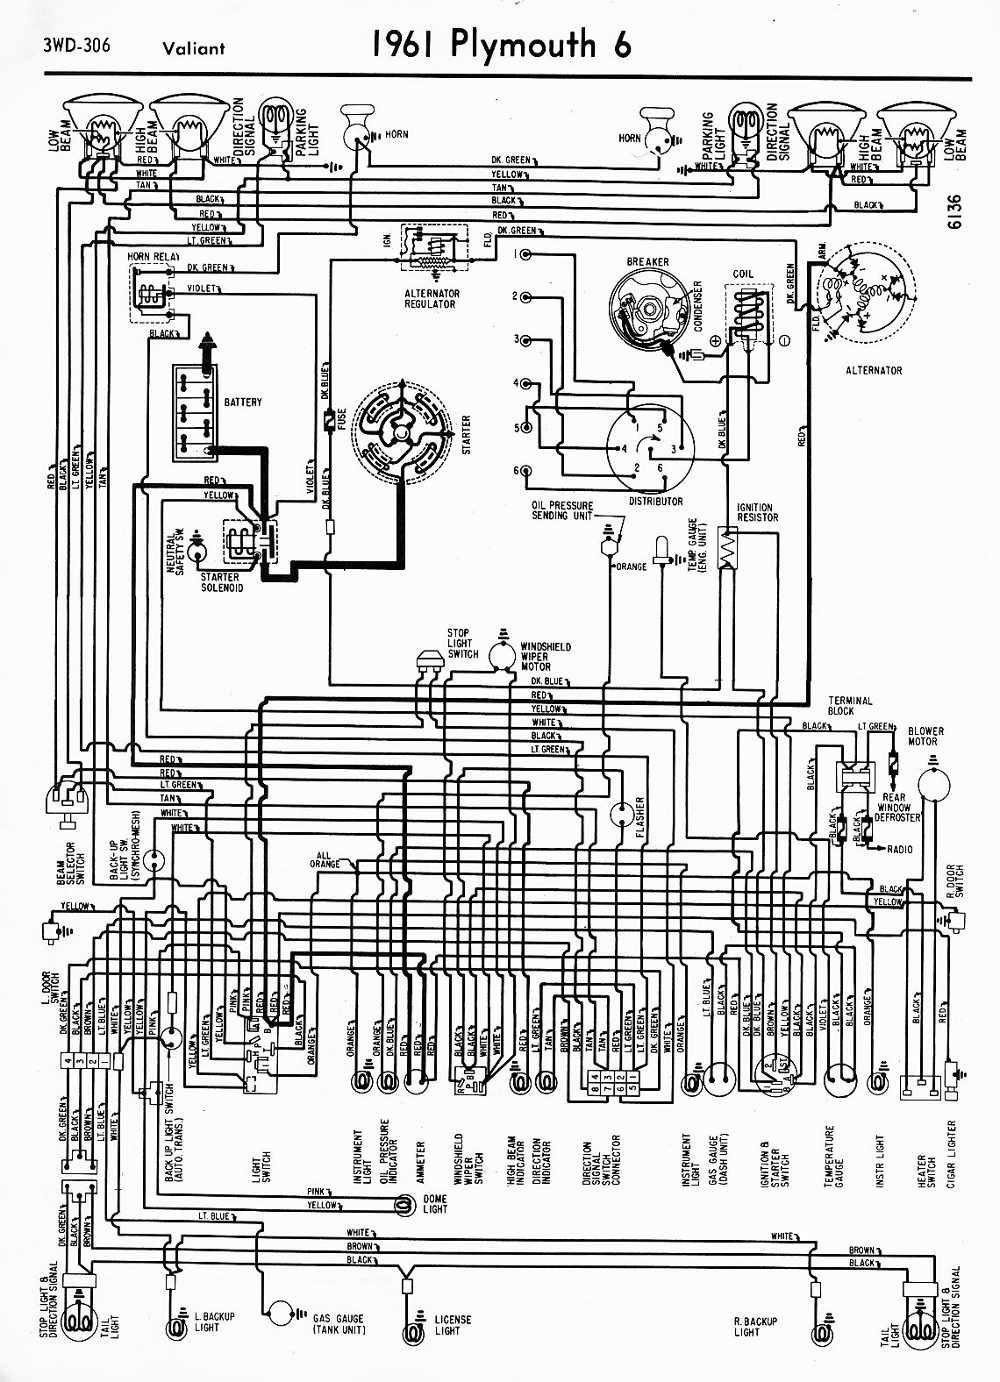 wiring diagrams of 1961 plymouth 6 valiant?t\\\=1508746019 1955 plymouth wiring diagram 1955 wiring diagrams instruction 1970 dodge coronet wiring diagram at crackthecode.co